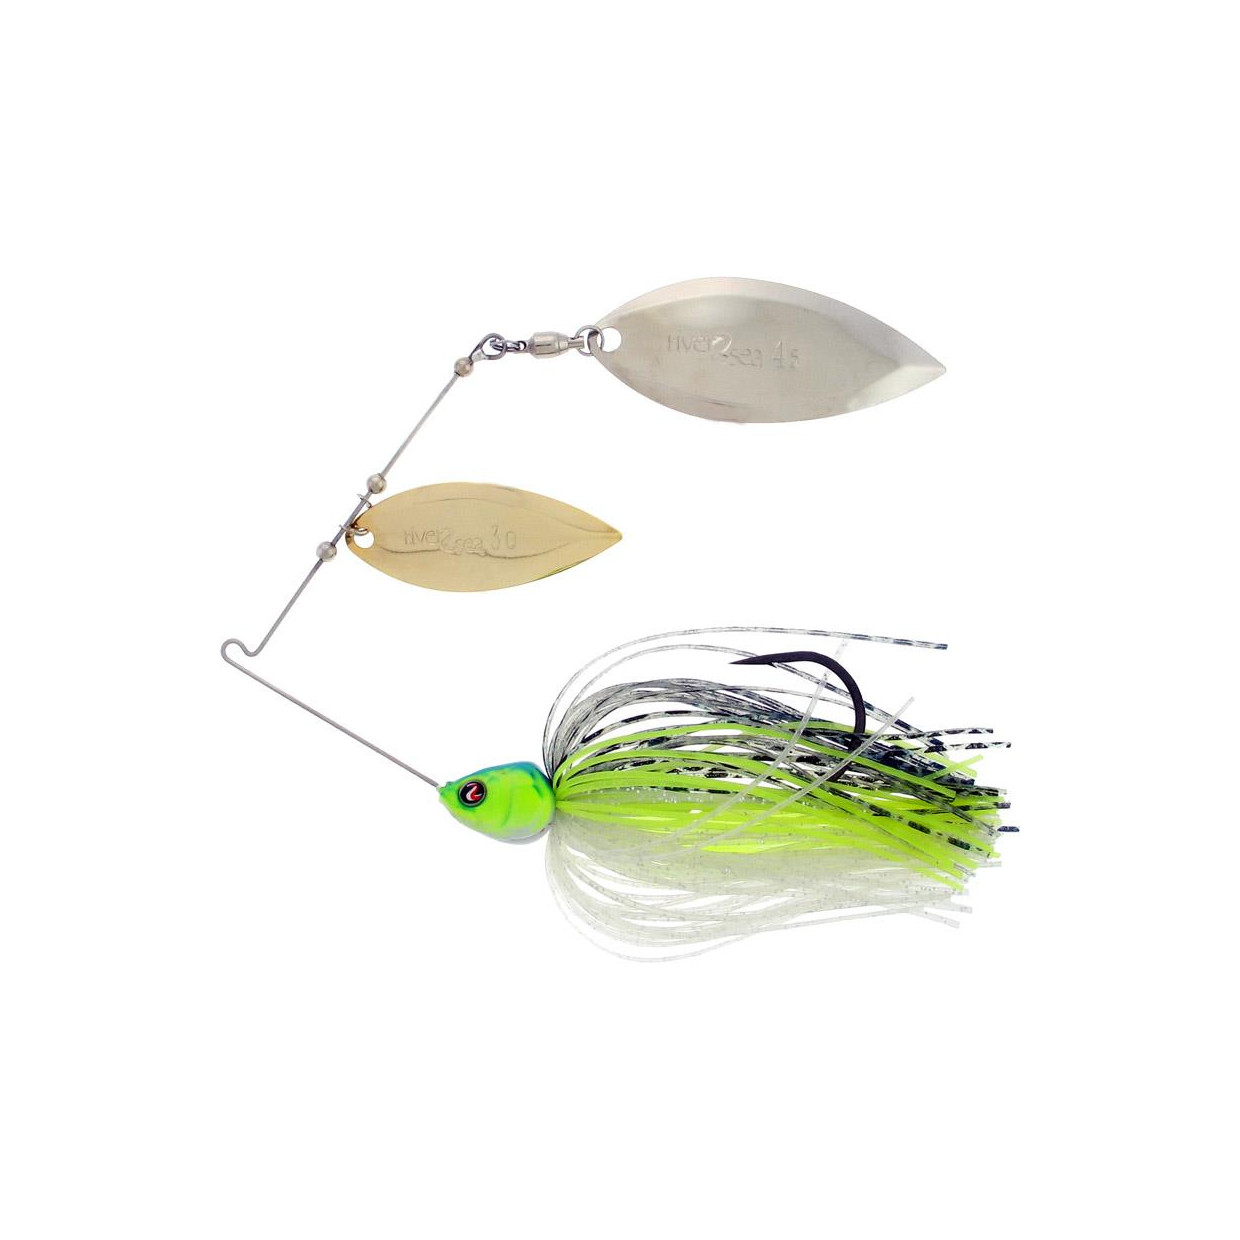 SPINNERBAIT RIVER2SEA BLING 14 GR